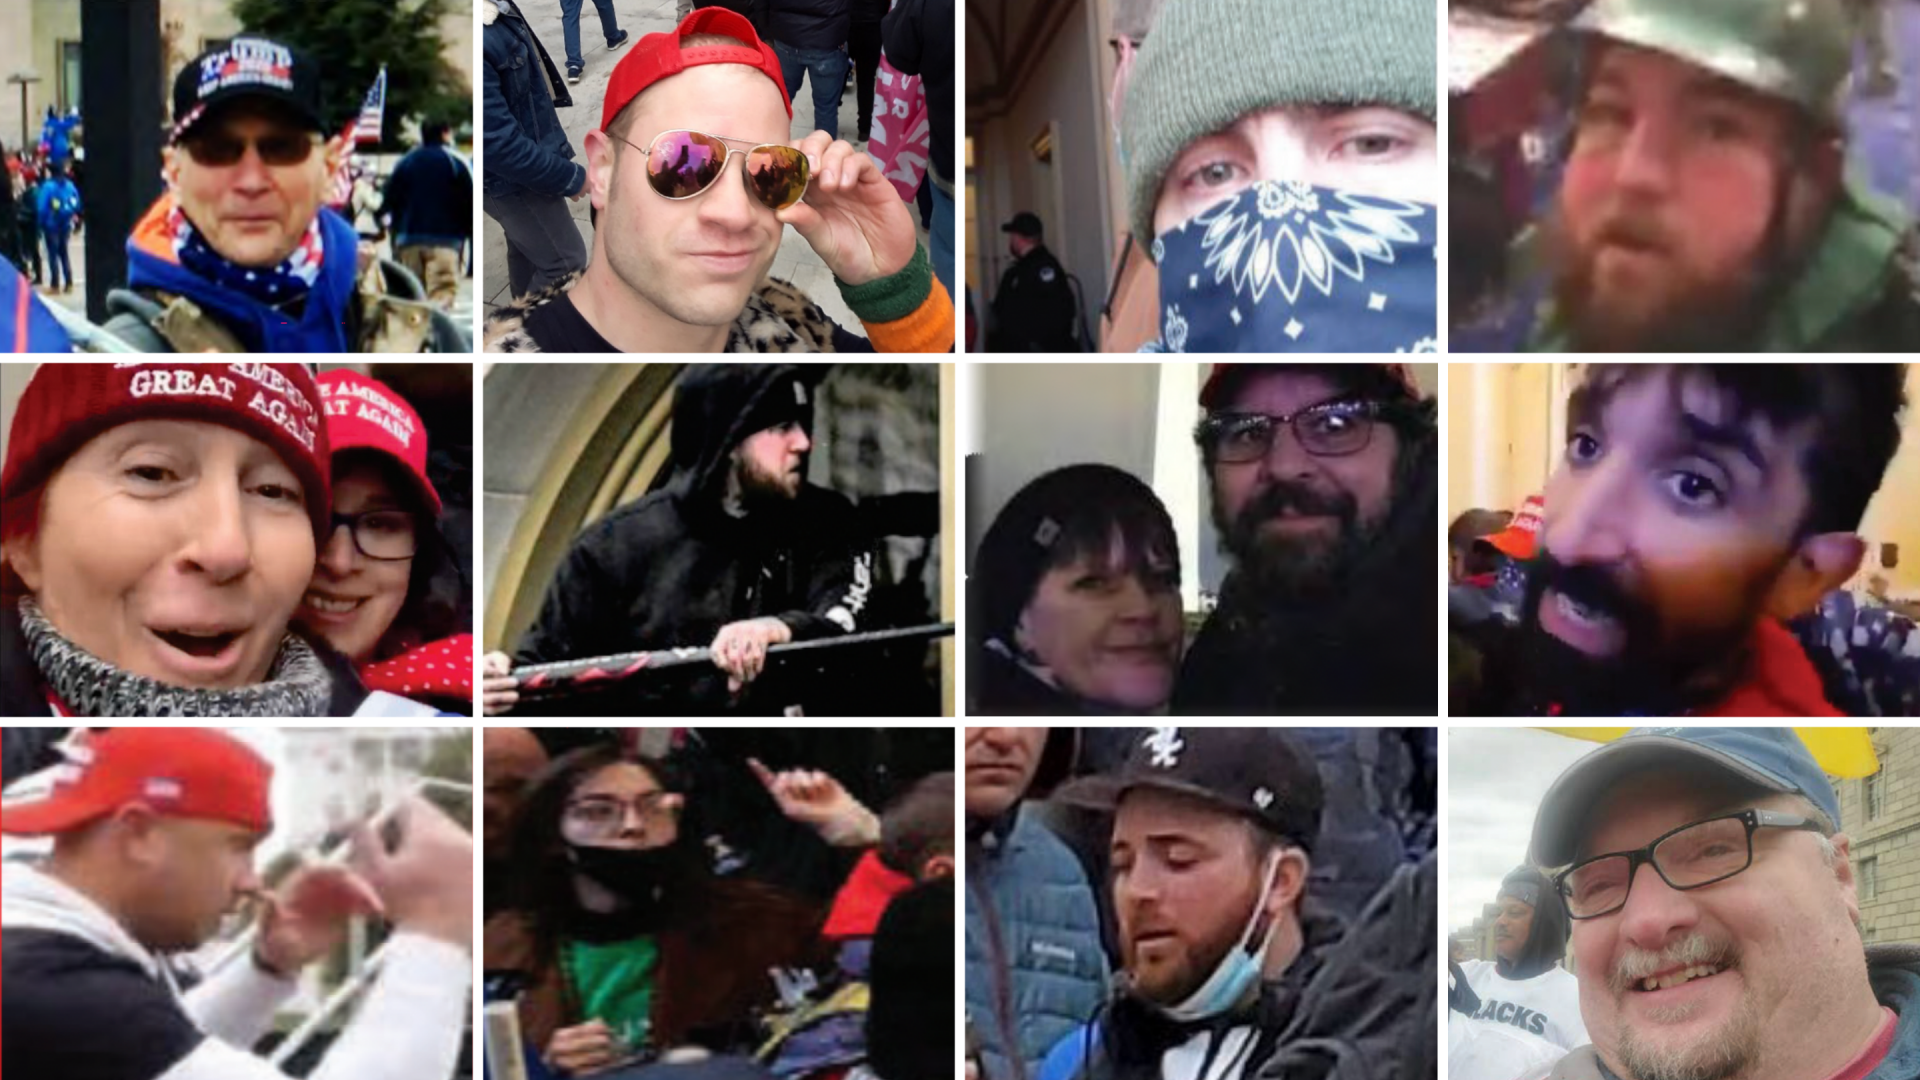 This collage of images from U.S. Department of Justice case records shows, from top row, left to right: Paul Spigelmyer, Jackson Kostolsky, Andrew Wrigley, Dale Jeremiah Shalvey, Dawn Bancroft and Diana Santos-Smith, Jordan Robert Mink, Christy and Matthew Clark, Matthew Perna, Ryan Samsel, Riley June Williams, Richard Michetti and Joseph Fischer.